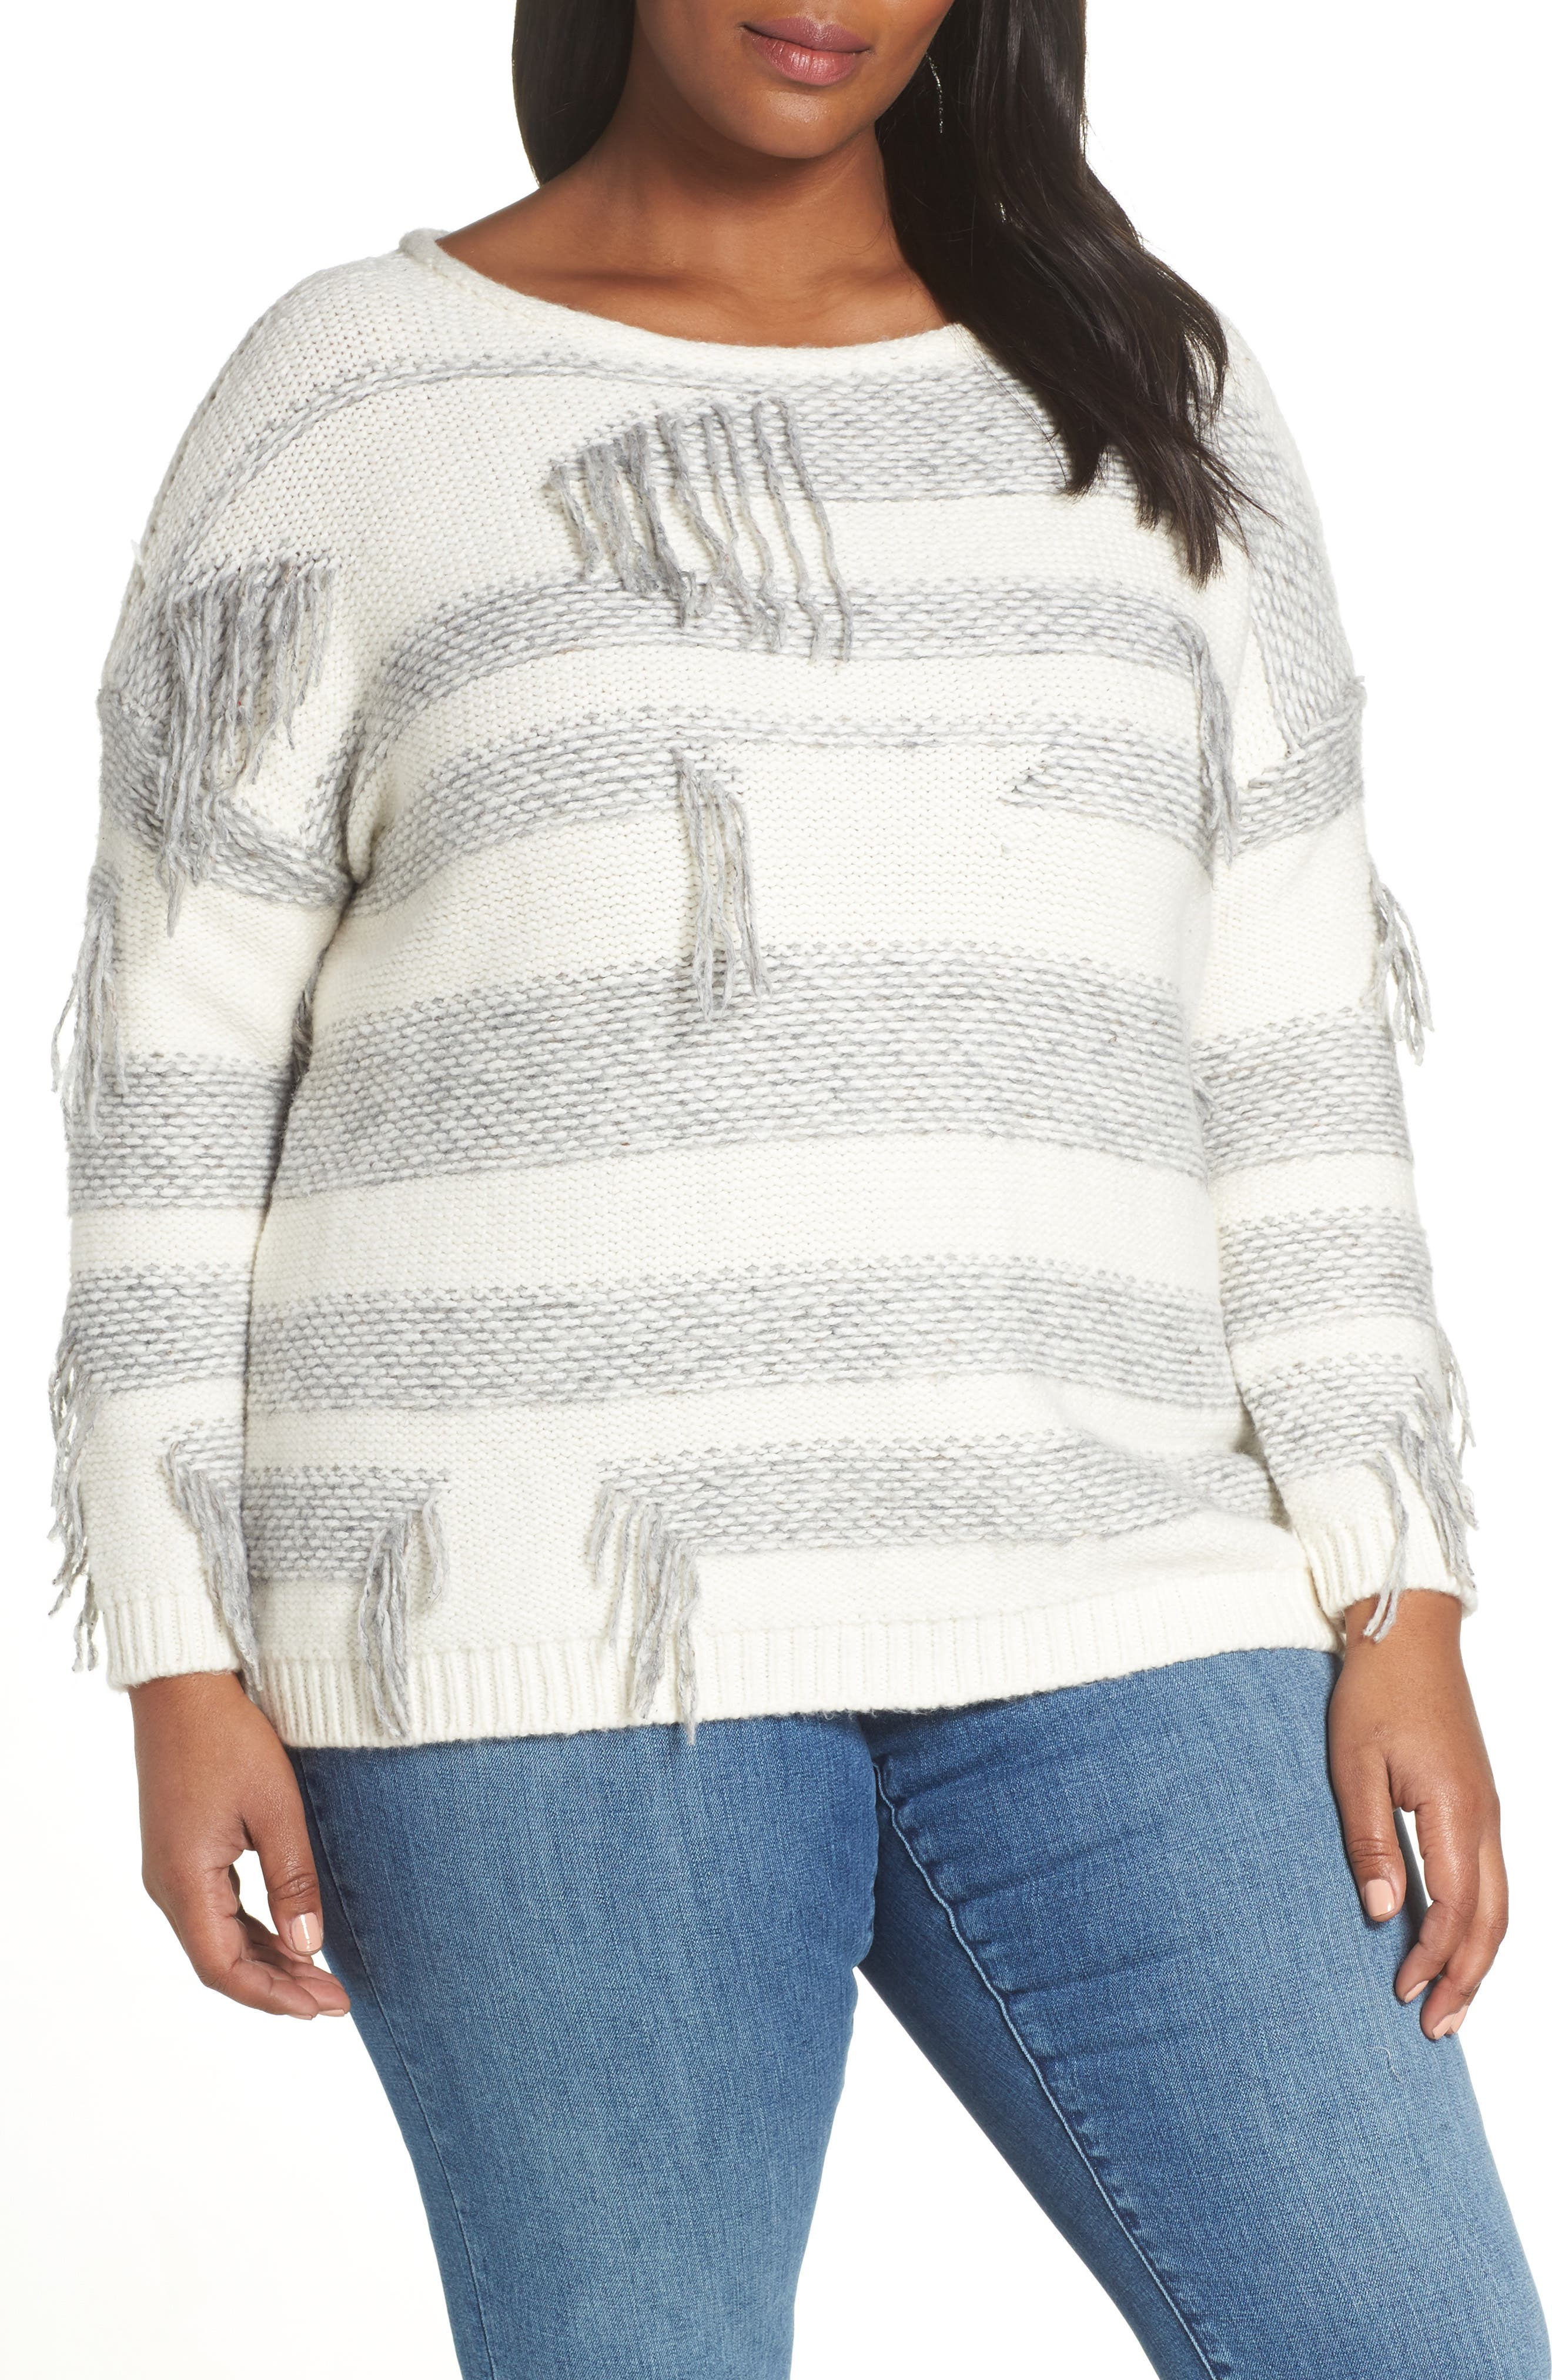 Fringe Detail Stripe Cotton Blend Sweater,                             Main thumbnail 1, color,                             LIGHT HEATHER GREY